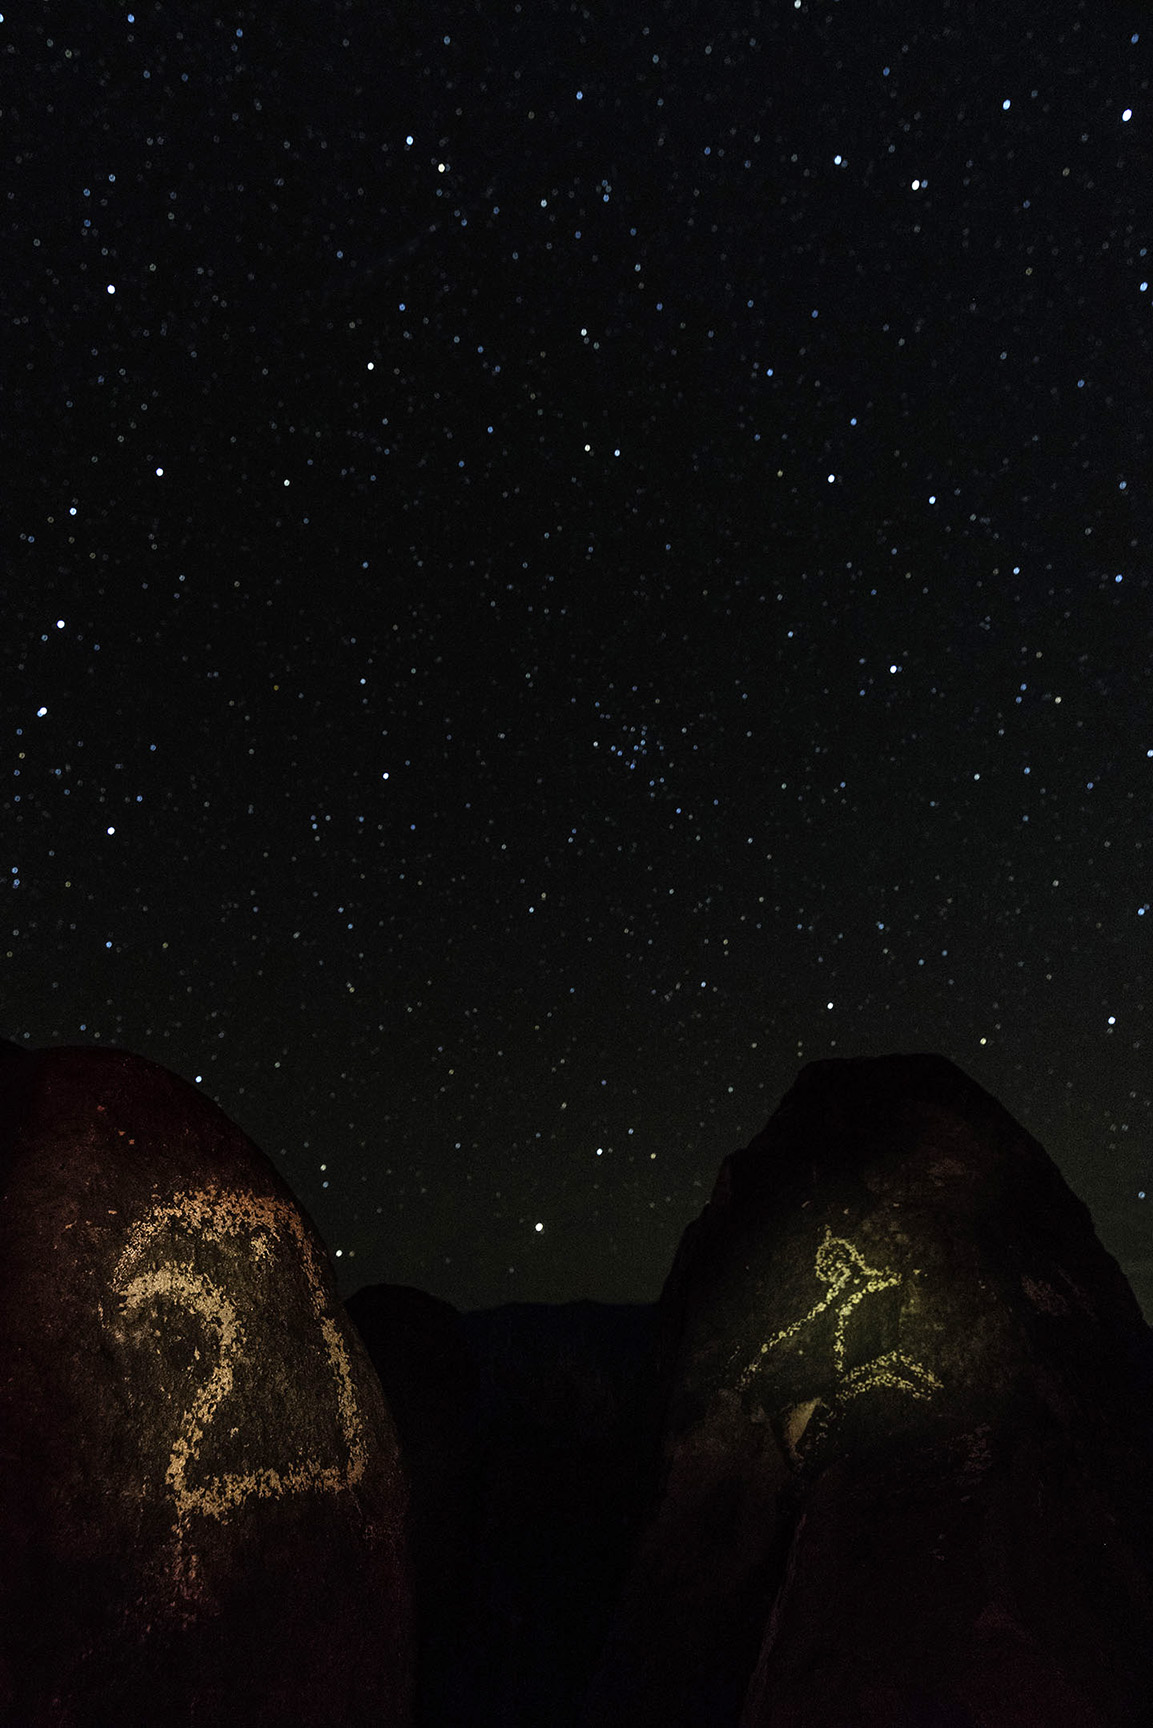 Stars Over Three Rivers Petroglyphs in New Mexico